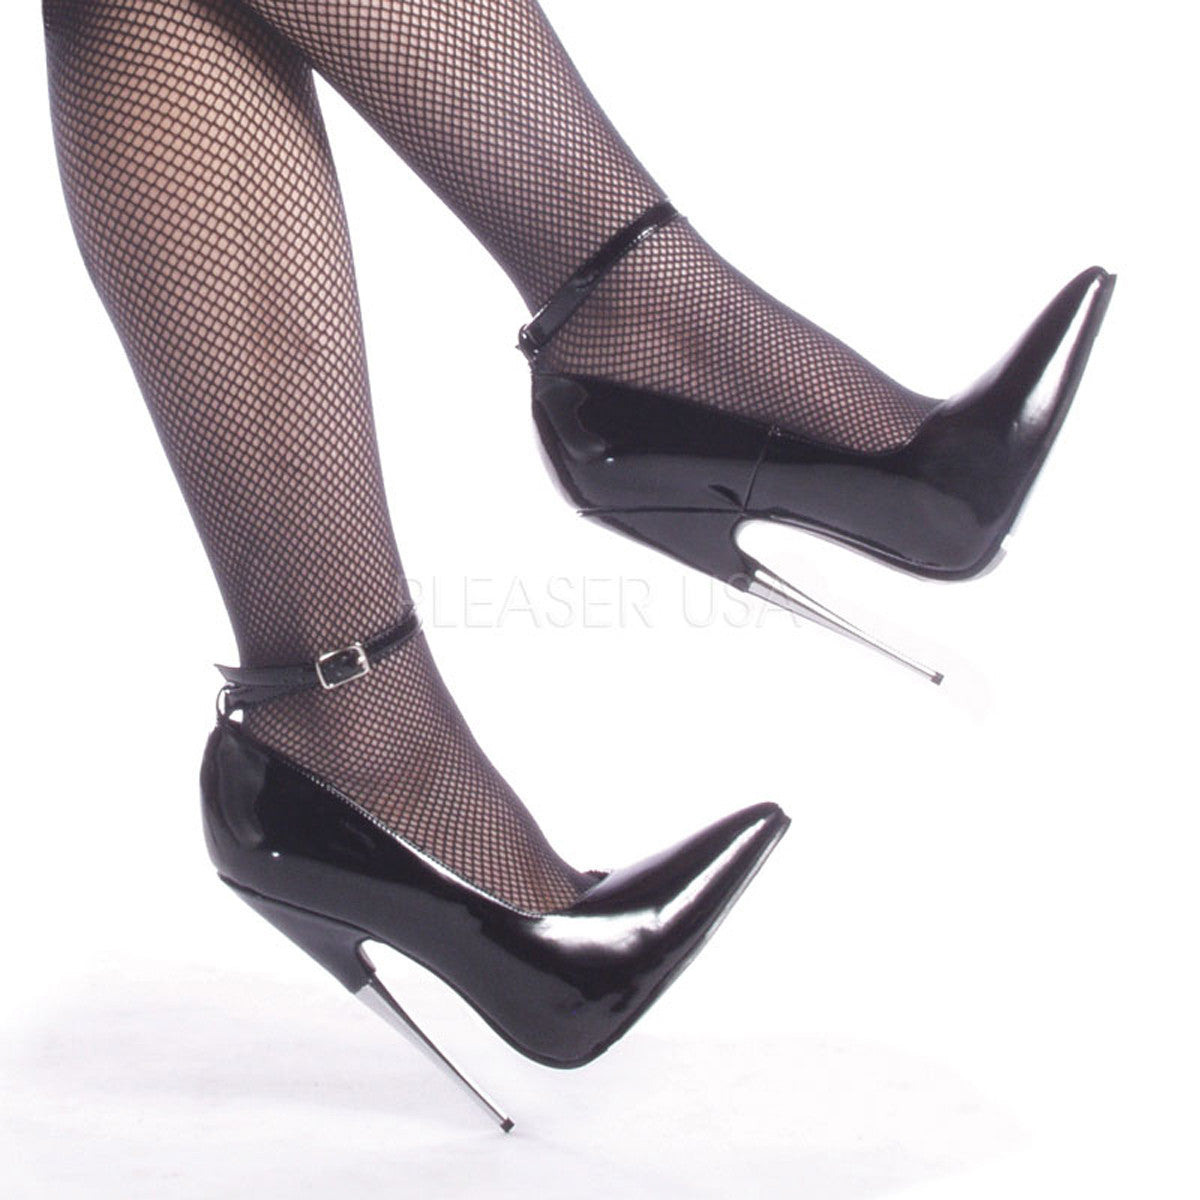 Devious,DEVIOUS SCREAM-12 Black Pat Pumps - Shoecup.com